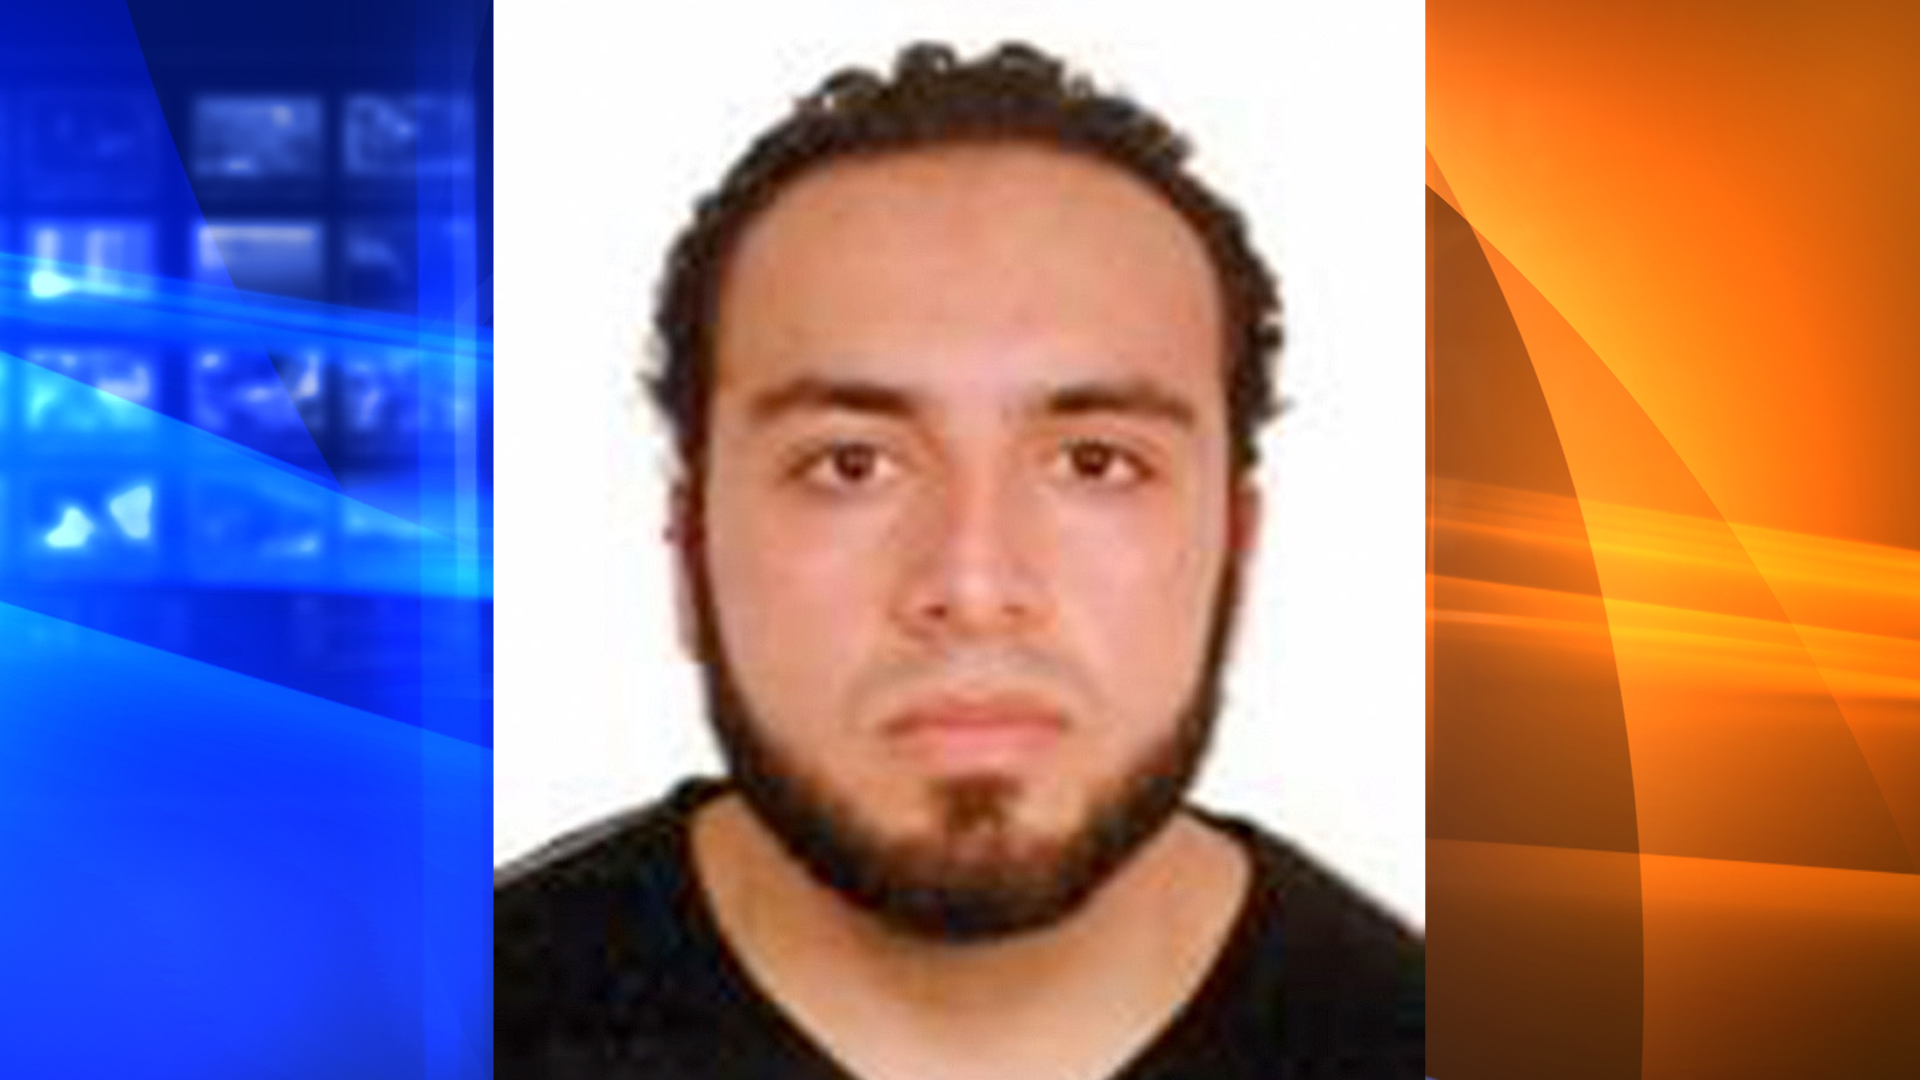 Ahmad Khan Rahimi is seen in an undated photo released by the FBI after a bombing in New York City's Chelsea neighborhood left 30 injured on Sept. 17, 2016. (Credit: FBI via Getty Images)